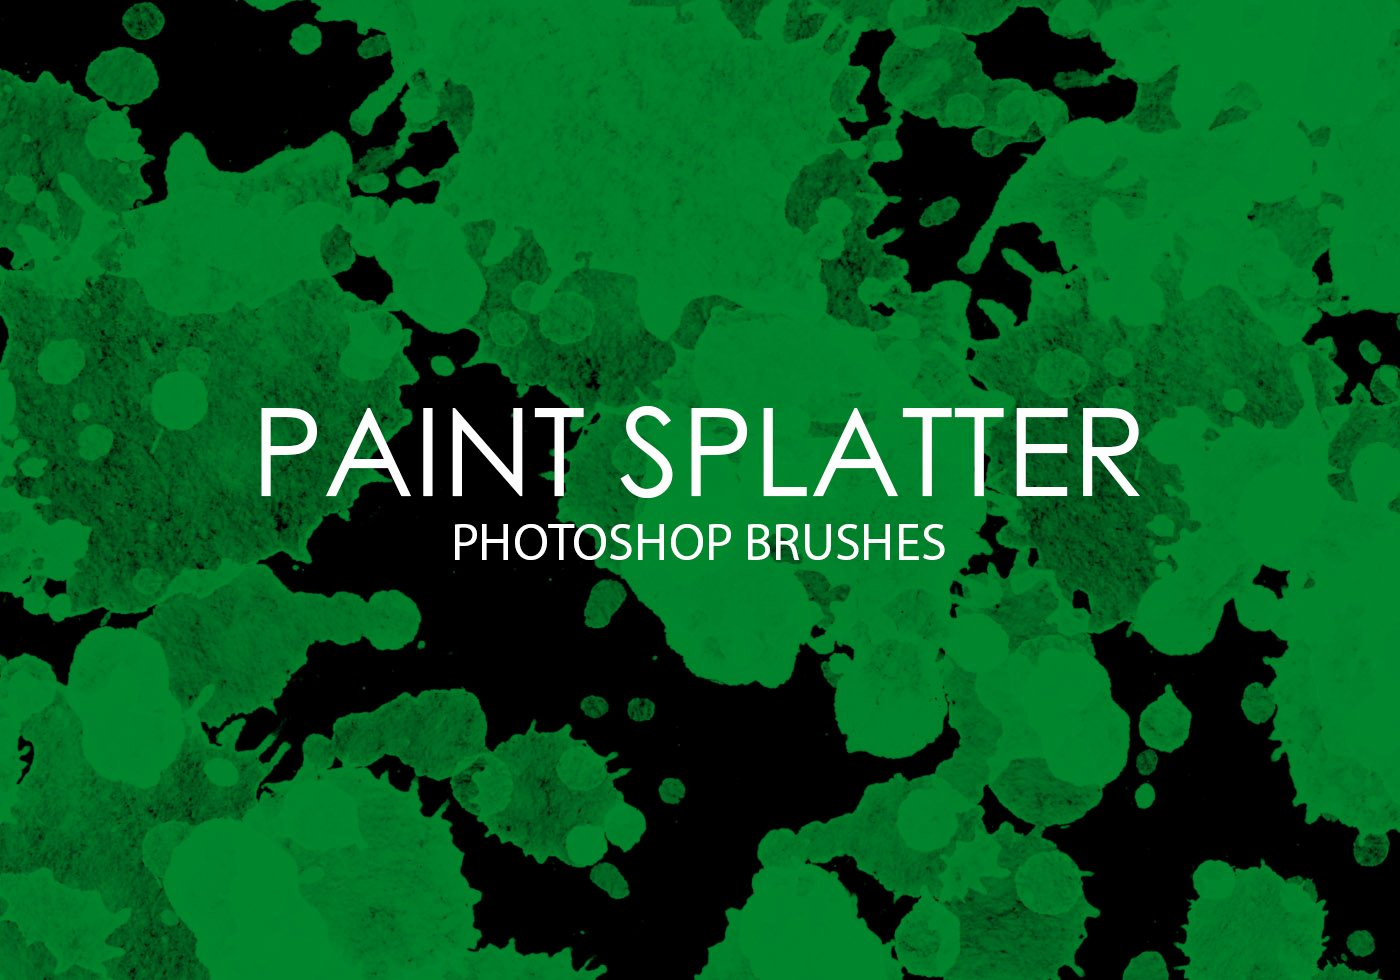 Paint Splatter Brush Photoshop Inspirational Free Paint Splatter Shop Brushes Free Shop